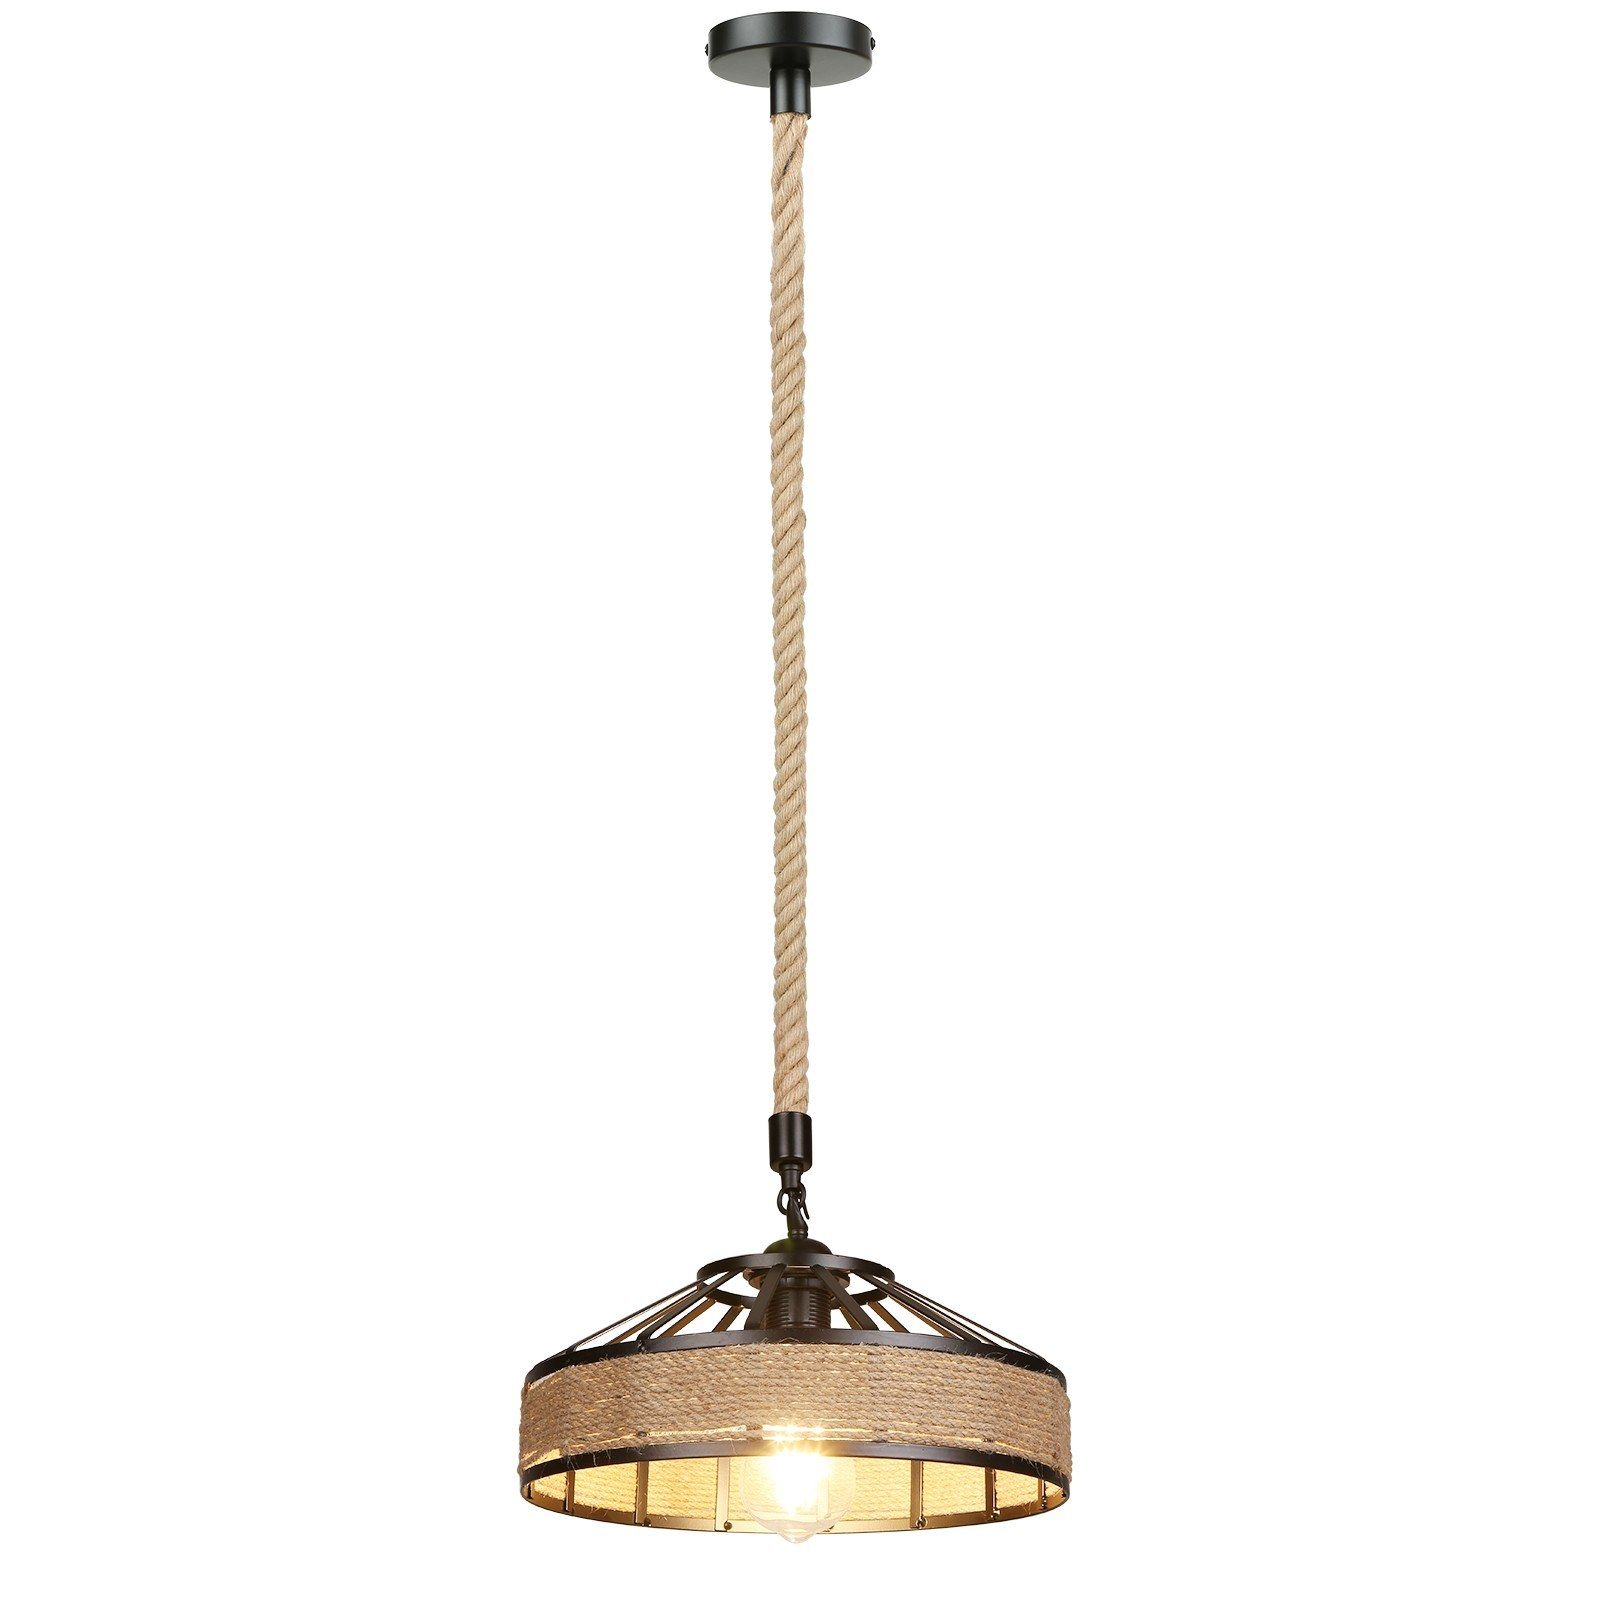 tomtop.com - 52% OFF Industrial Hemps Rope Pendants Light, Free Shipping $49.99